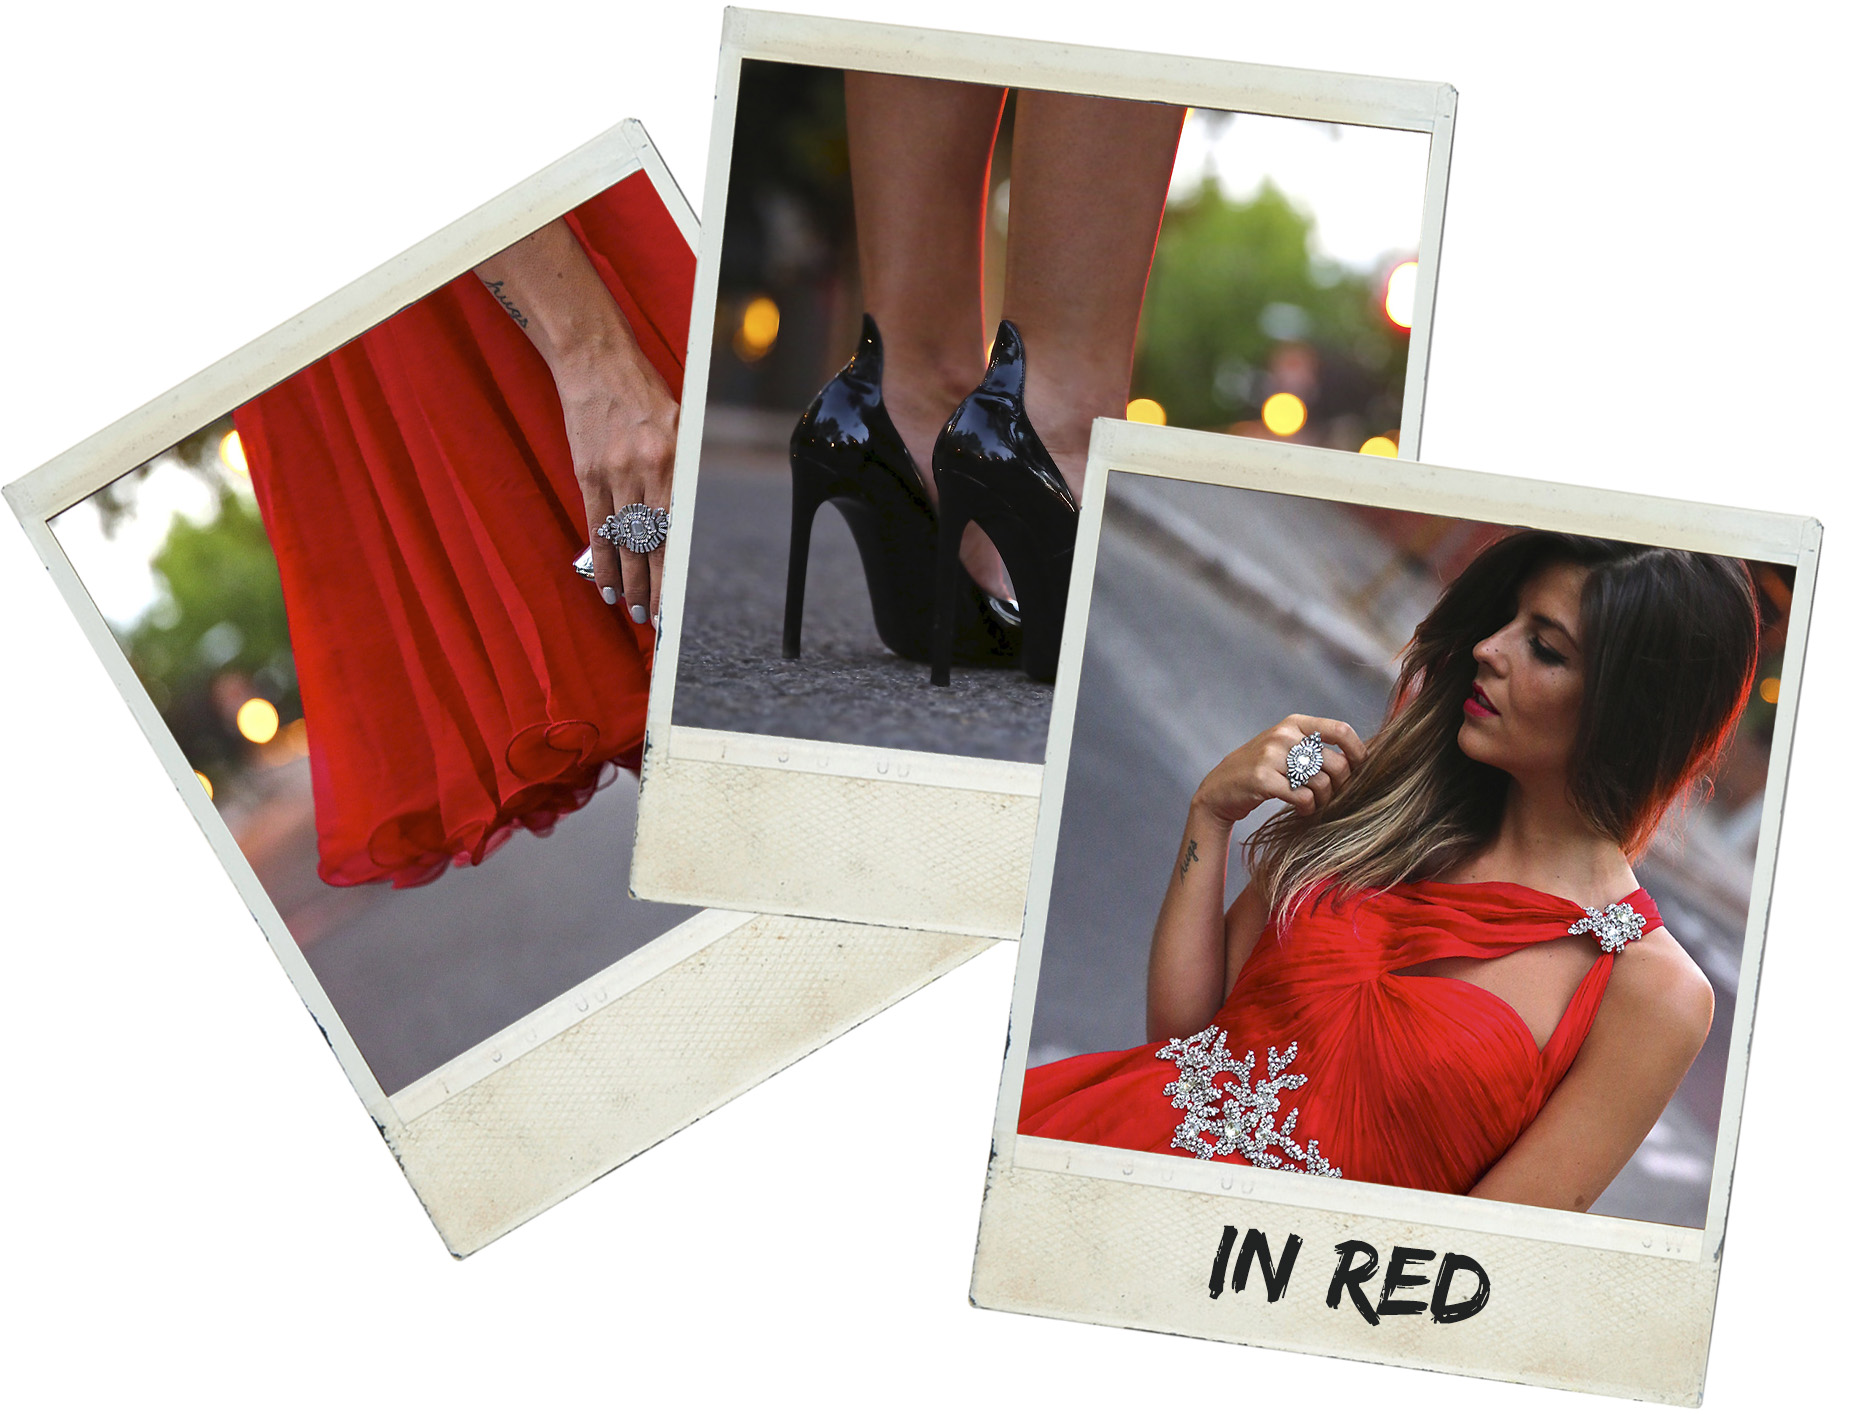 trendy_taste-look-outfit-street_style-ootd-blog-blogger-fashion_spain-moda_españa-red_dress-vestido_rojo-pedreria-coctel-cocktail-boda-wedding-chupa_cuero-leather_jacket-saint_laurent-polaroid